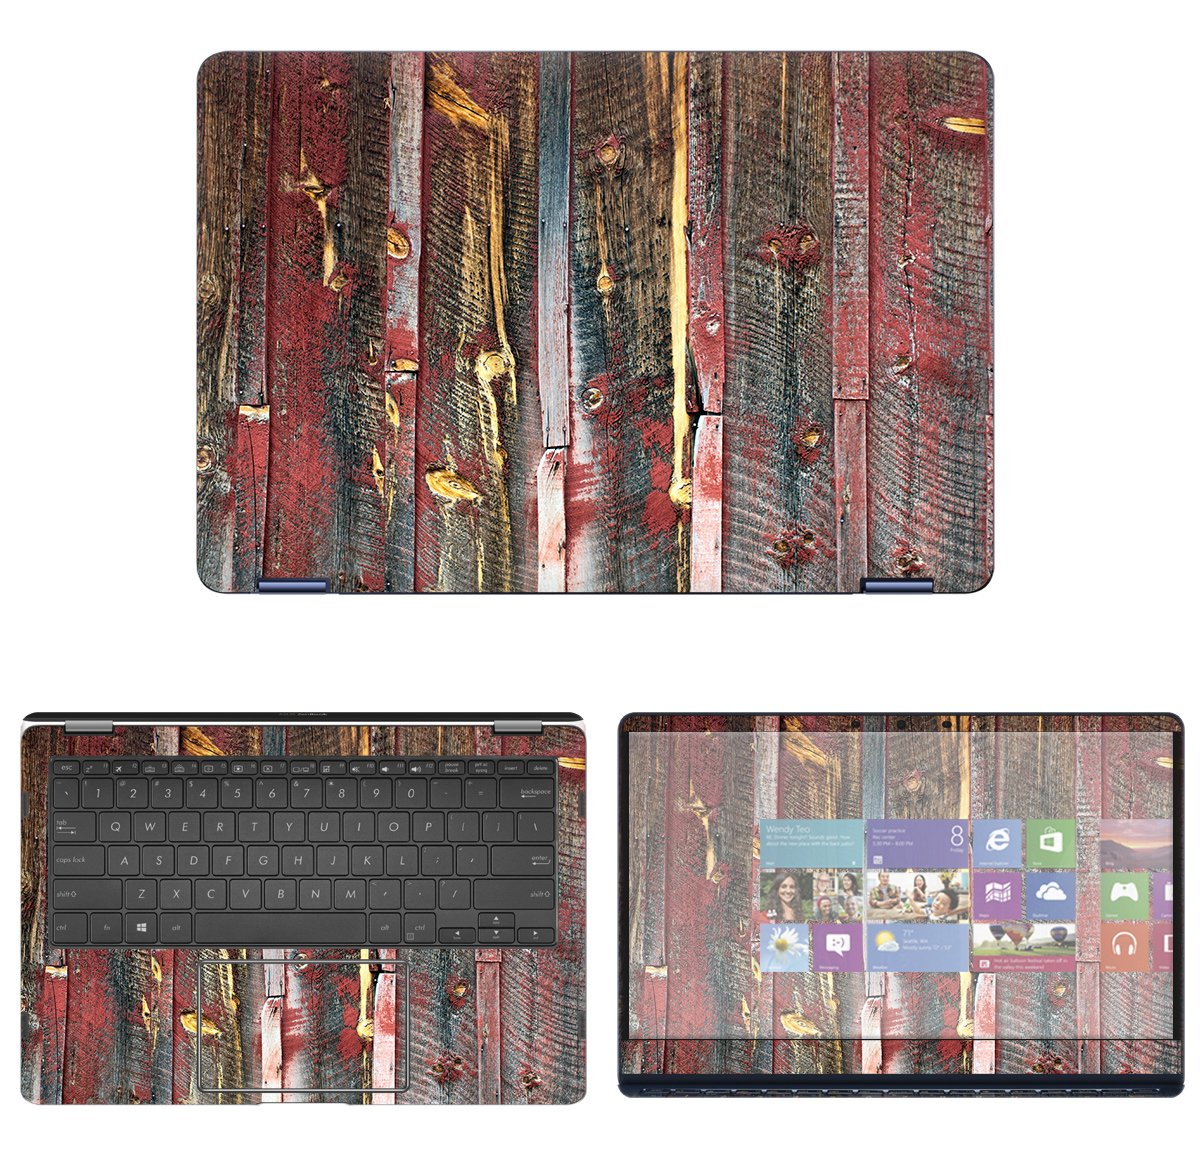 decalrus Protective Decal Reclaimed Wood Skin Sticker for Asus ZenBook Flip S UX370UA (13.3'' Screen) case cover wrap ASzenbkFlipS_ux370-213